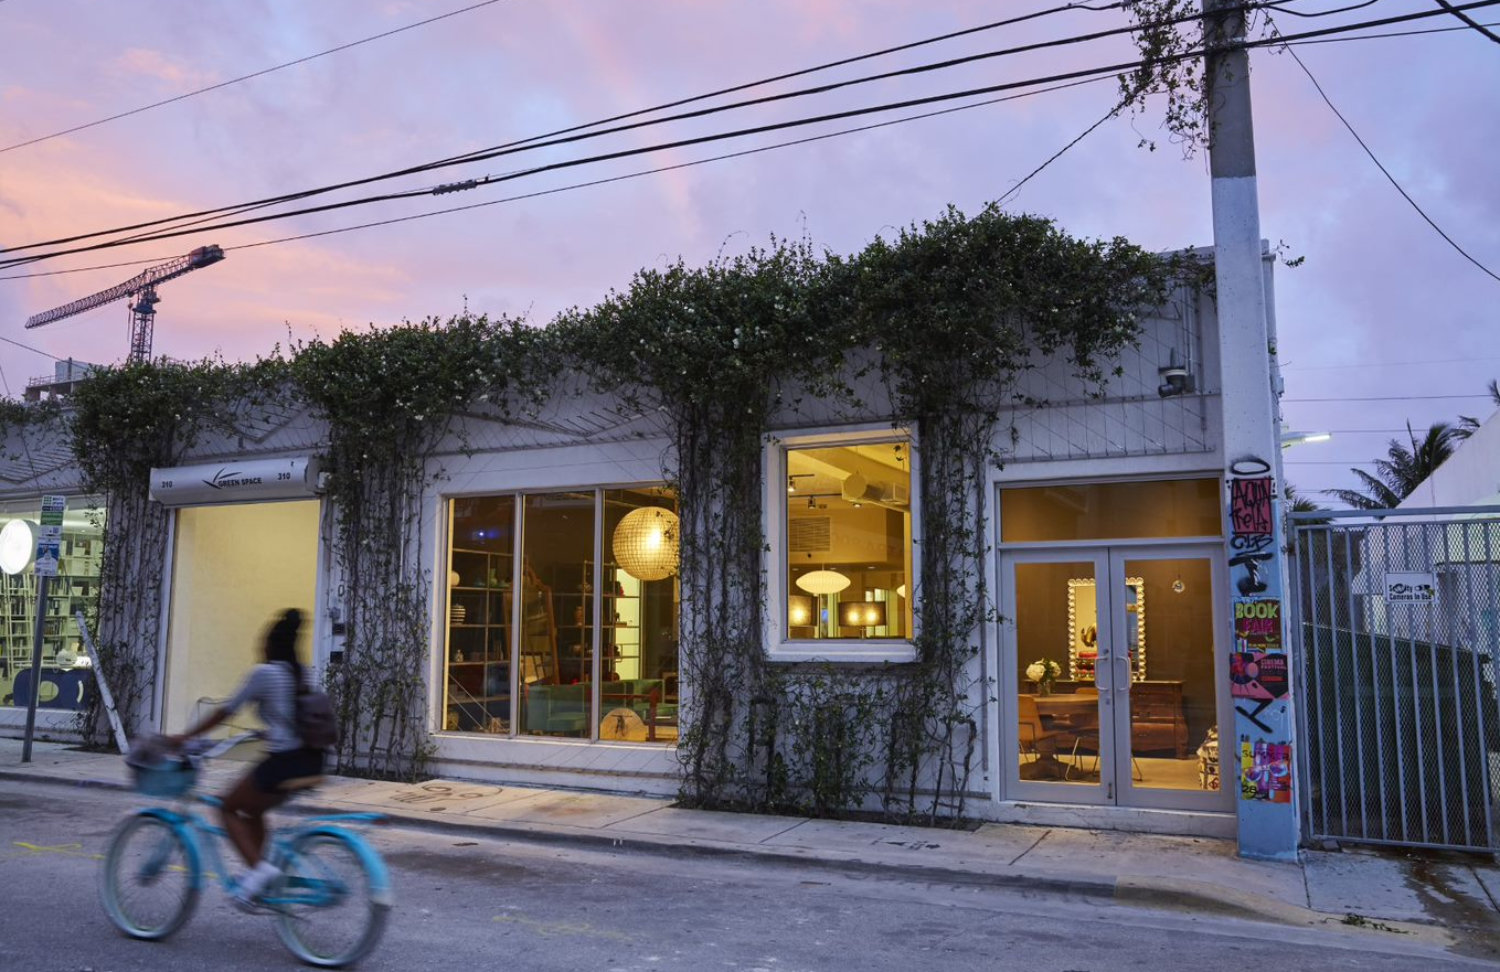 Pink skies, a cyclist, a touch of street art pretty much summarizes the good life in Wynwood.